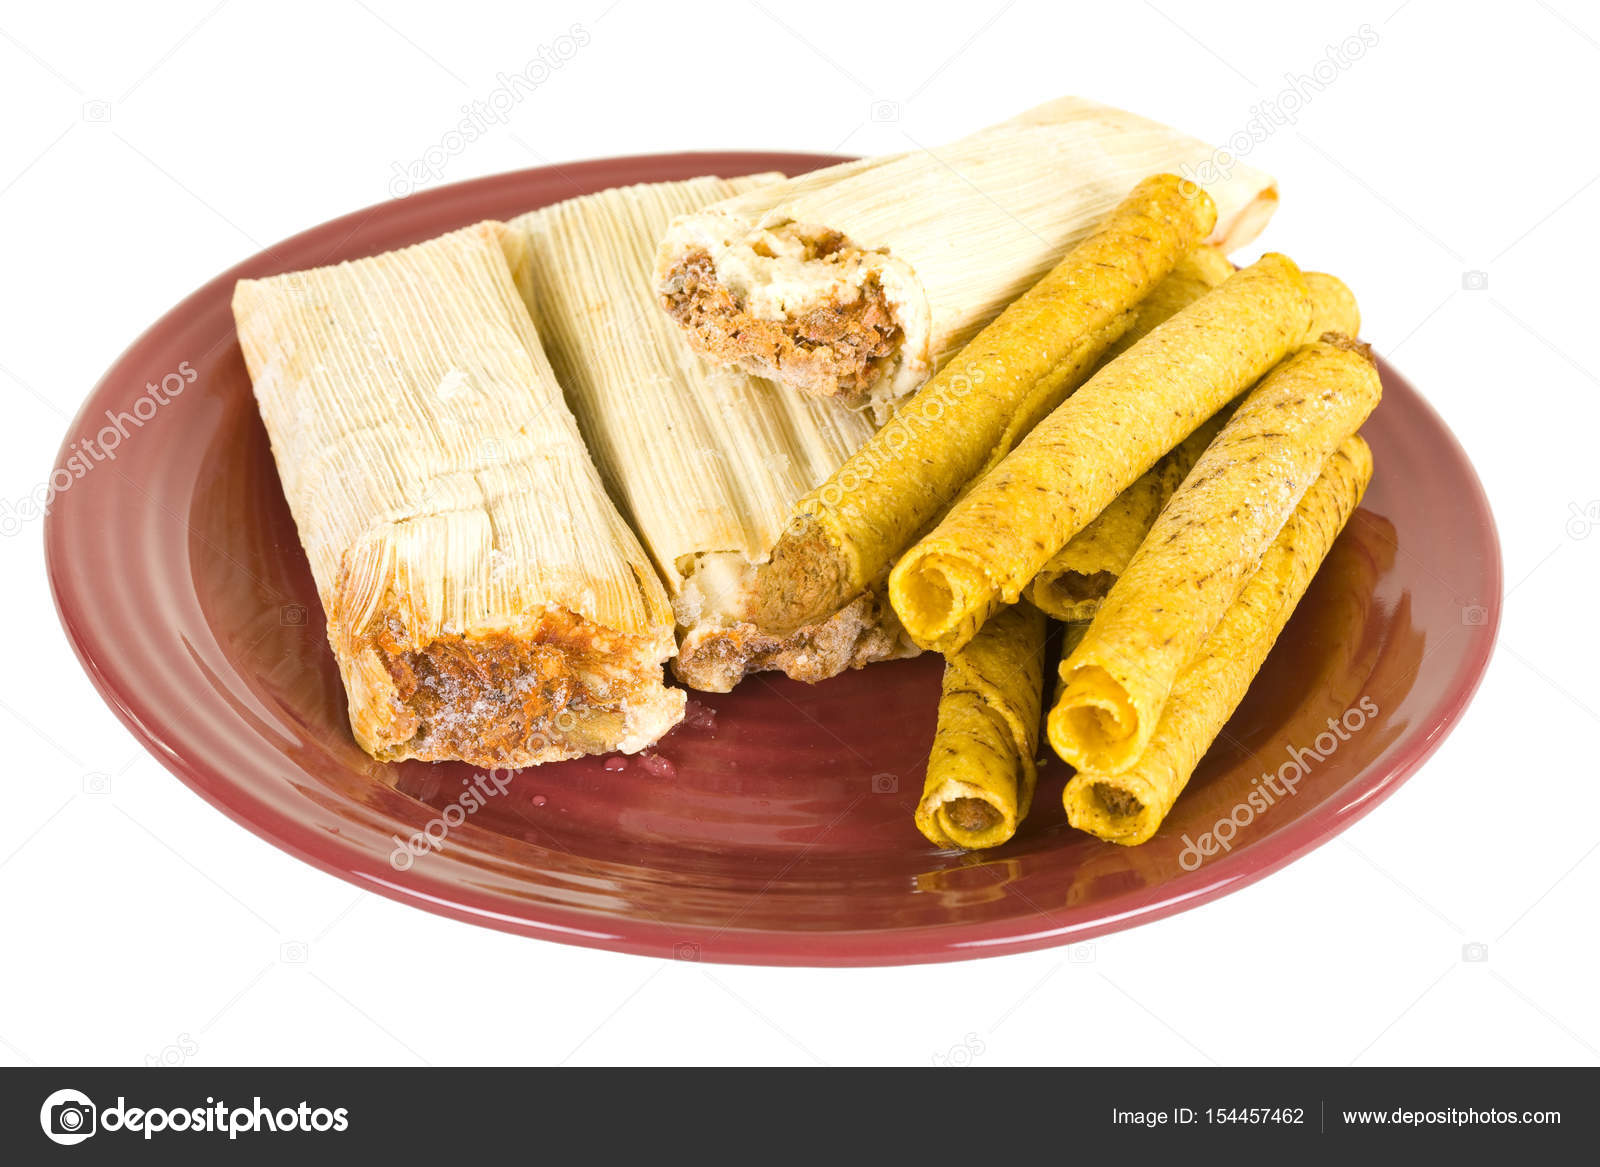 Frozen Tamales And Tacos On Ceramic Plate \u2014 Stock Photo  sc 1 st  Depositphotos & Frozen Tamales And Tacos On Ceramic Plate \u2014 Stock Photo © Foto.Toch ...